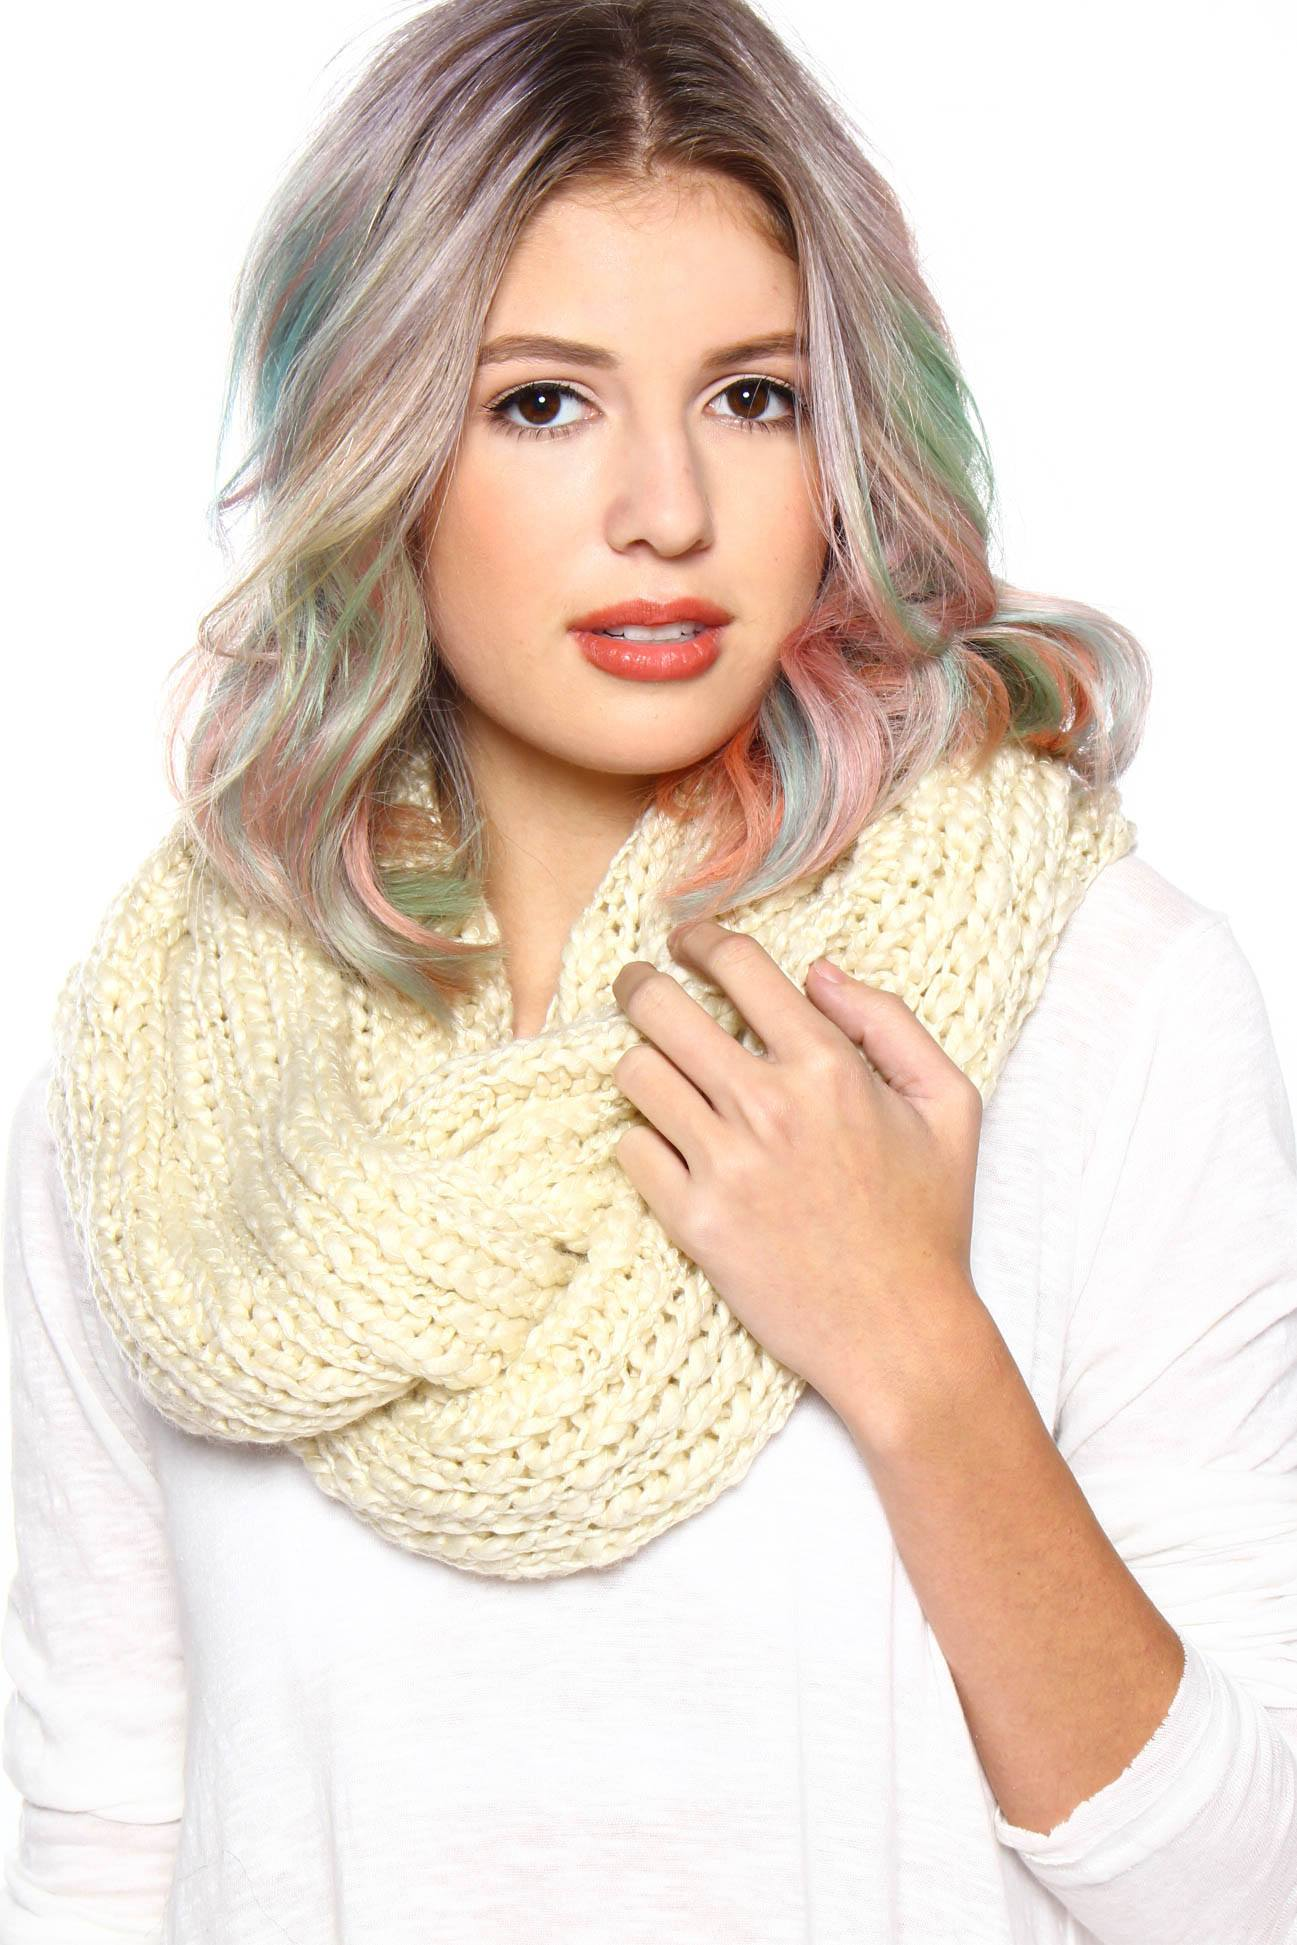 Under Wraps Infinity Scarf - Off White